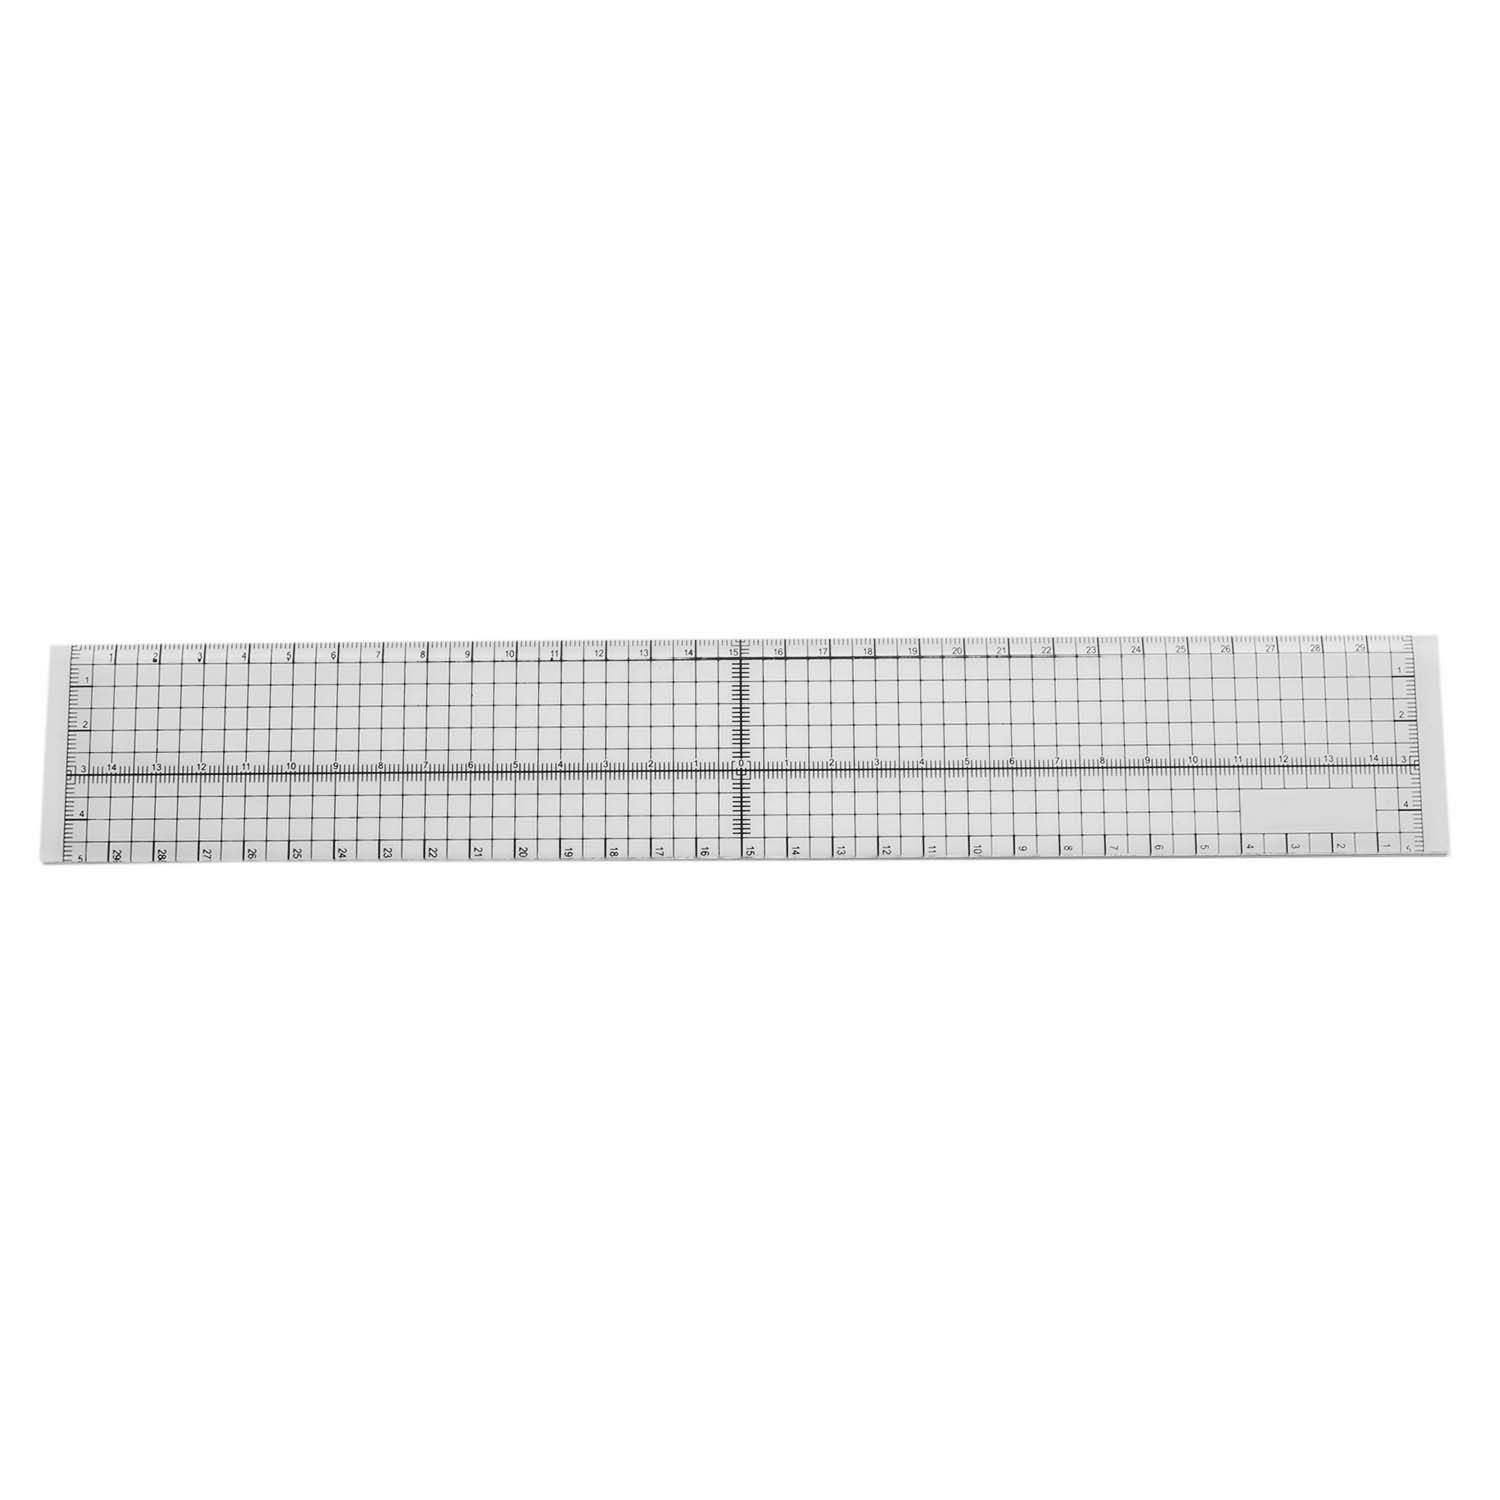 Top Quality 30cm DIY Sewing Patchwork Foot Aligned Ruler Quilting Grid Cutting Tailor Craft